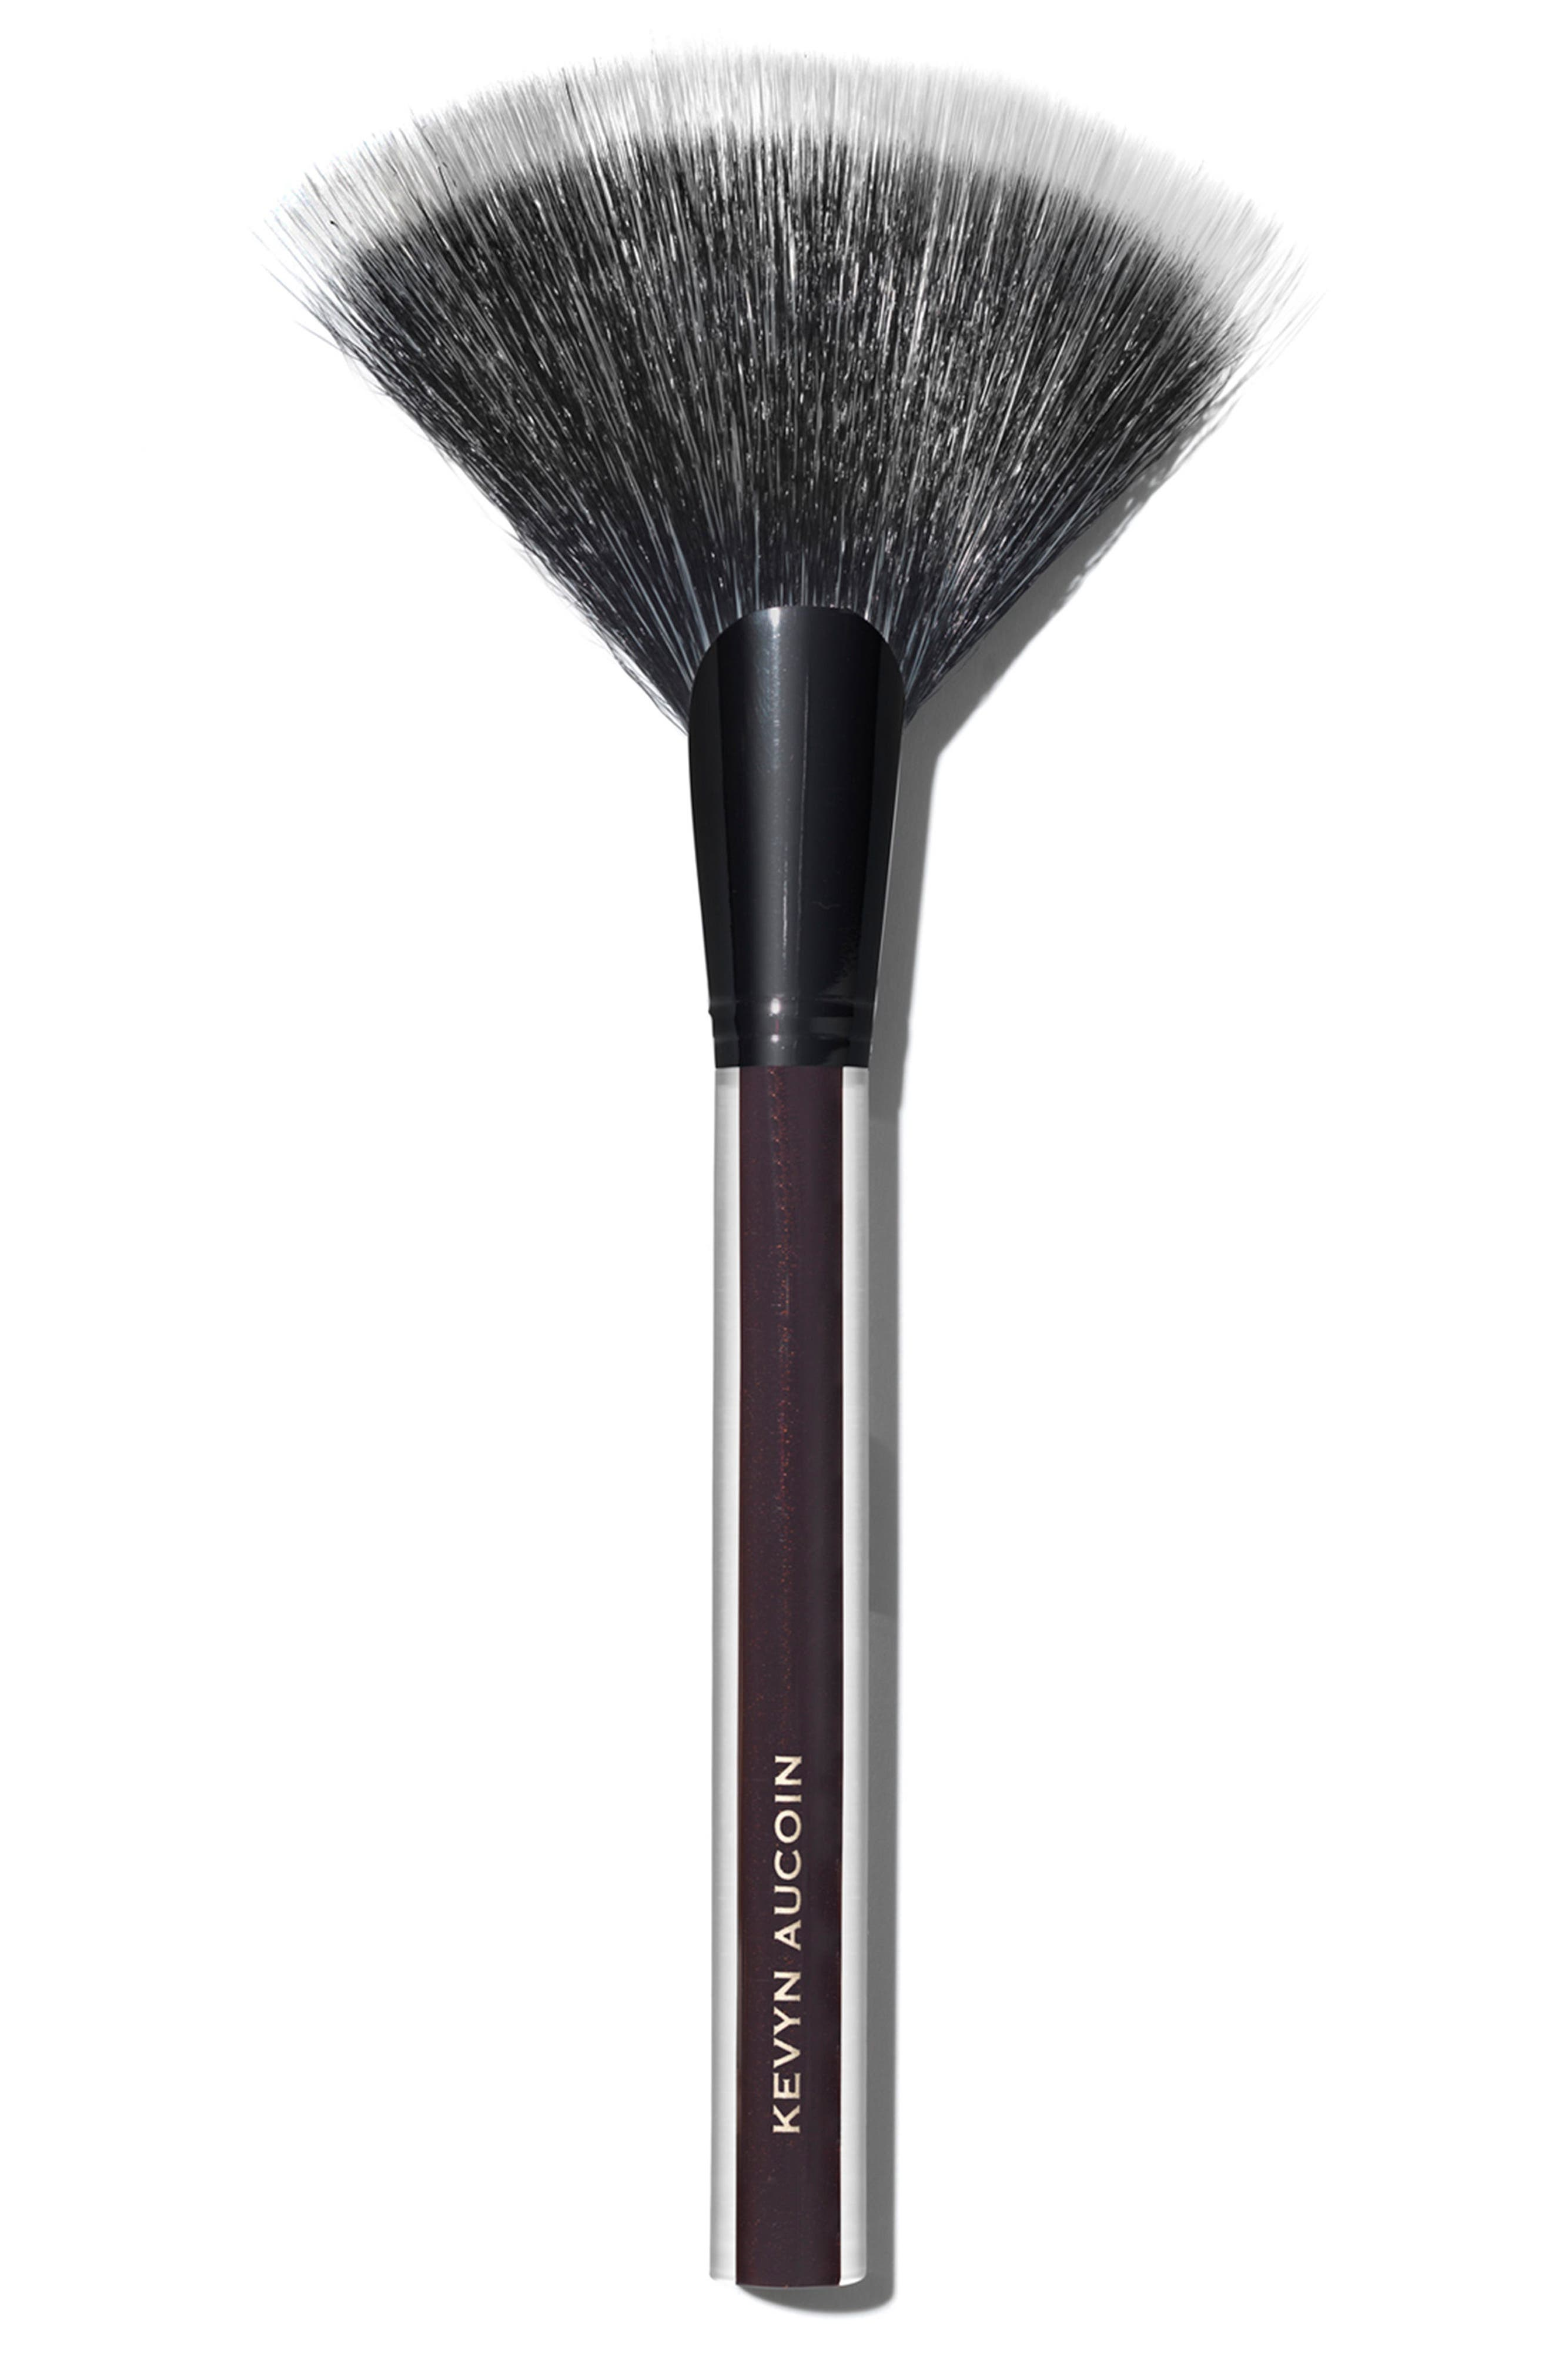 SPACE.NK.apothecary Kevyn Aucoin Beauty The Large Fan Brush,                             Main thumbnail 1, color,                             NO COLOR